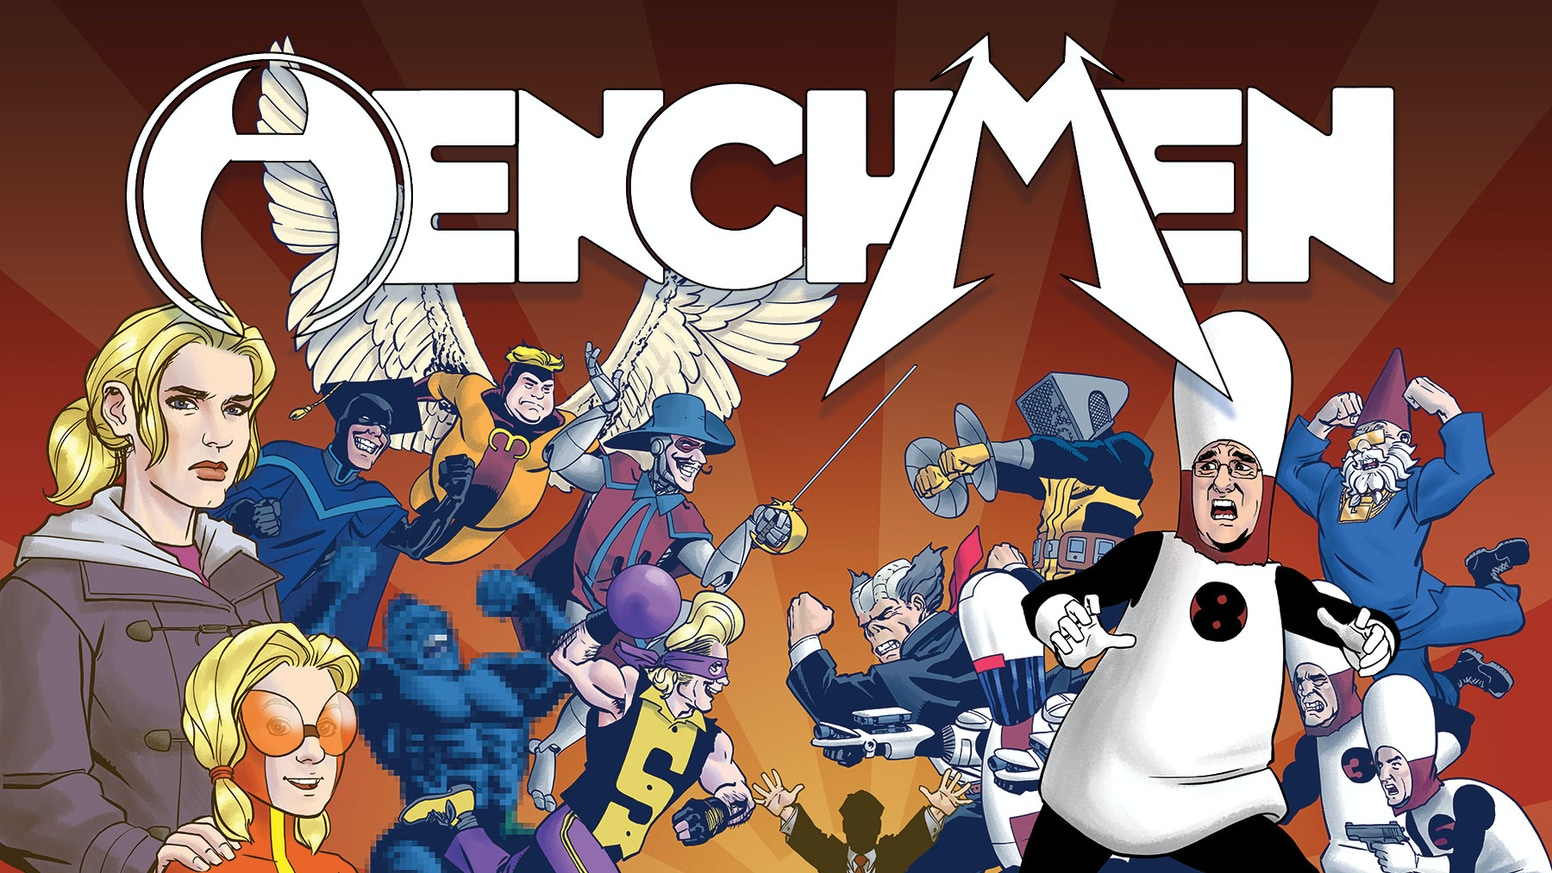 This graphic novel collects the first seven issues of Henchmen & other stories. Includes the entire I, Henchbot series and prequels!